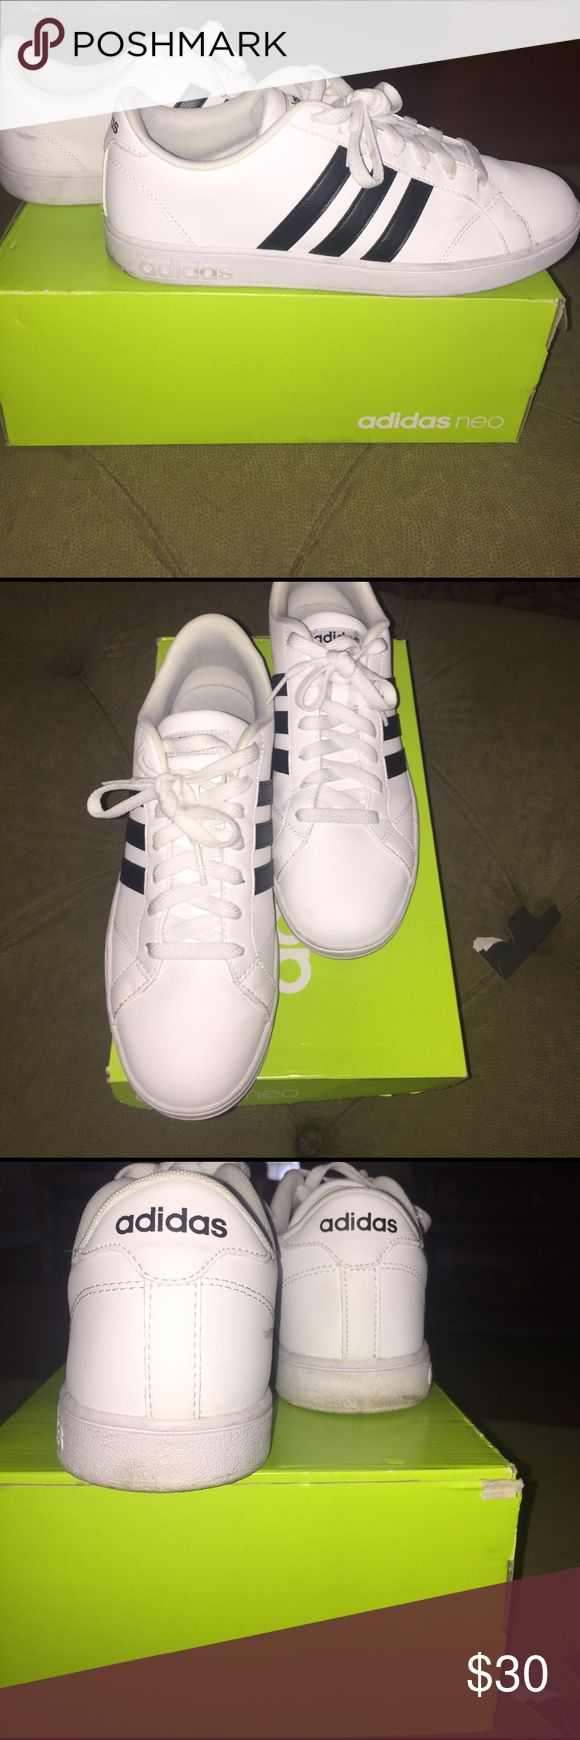 Adidas Neo sneakers size 9.5 Lightly worn adidas neo sneakers. Will come with original box and new shoelaces! Size 9.5.. pictures show signs of wear, but can easily be cleaned to look new! Originally $69 Adidas Shoes Sneakers